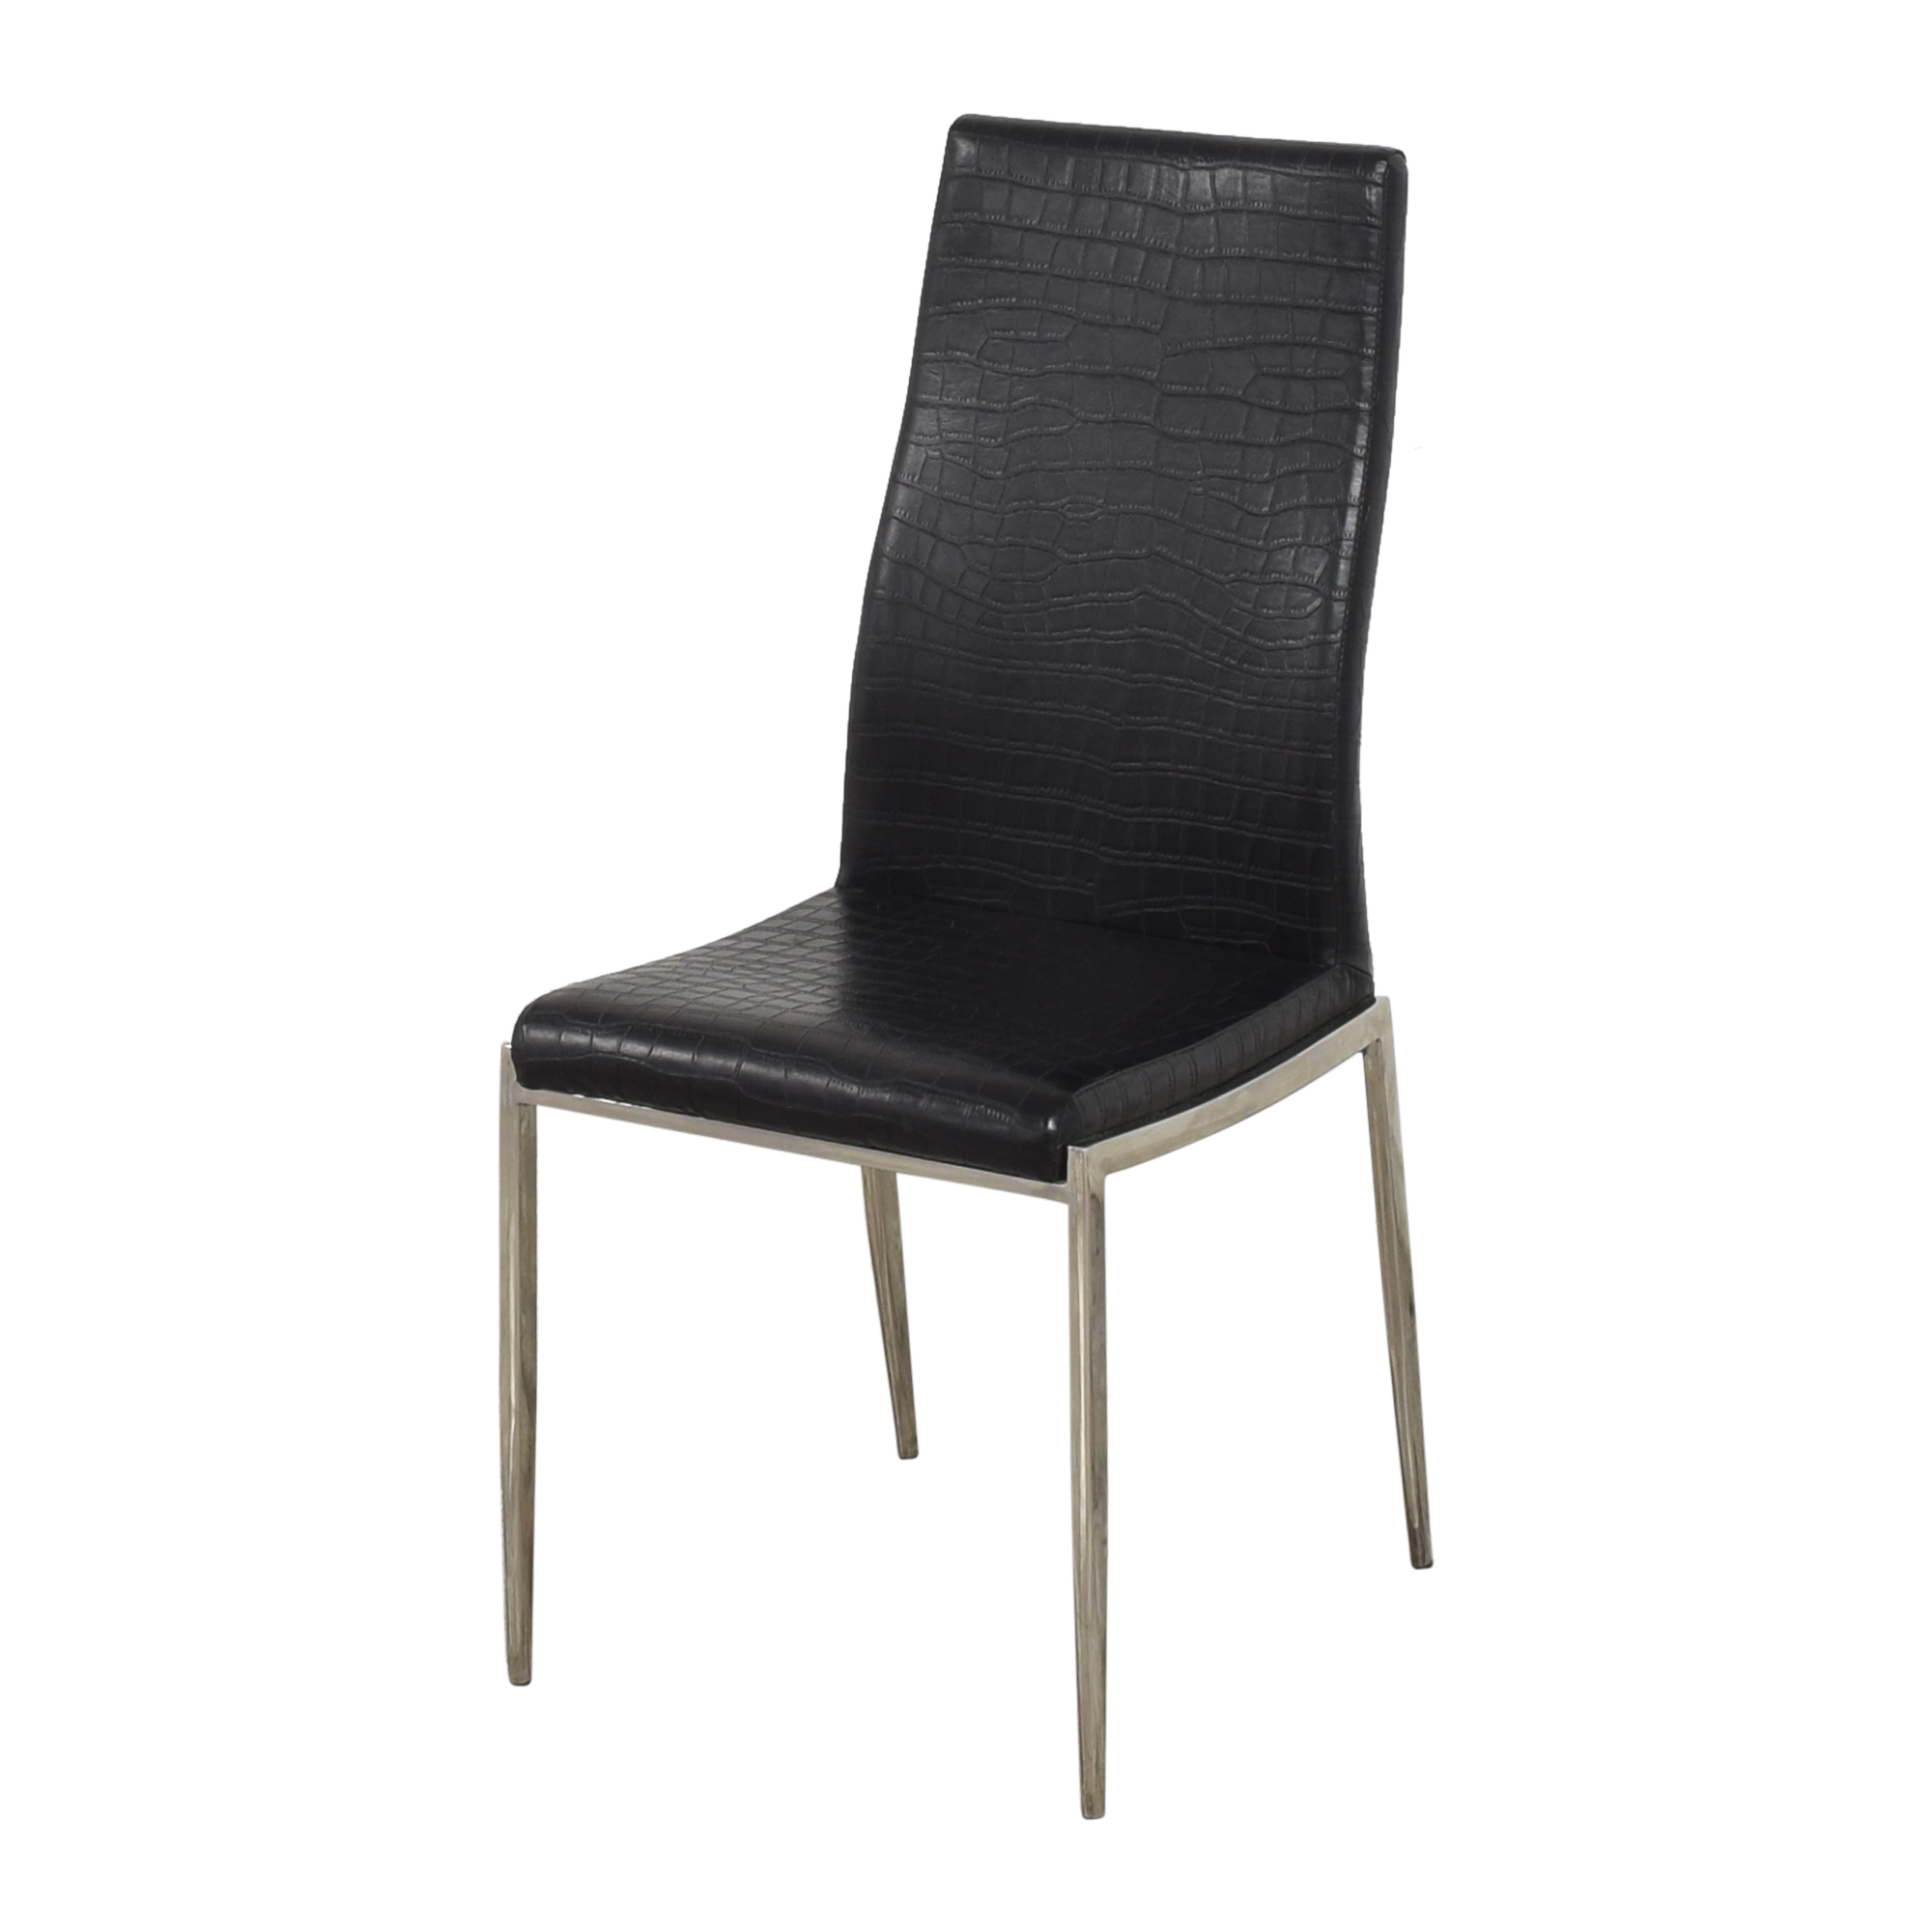 Stone International Stone International Claire Dining Side Chair on sale